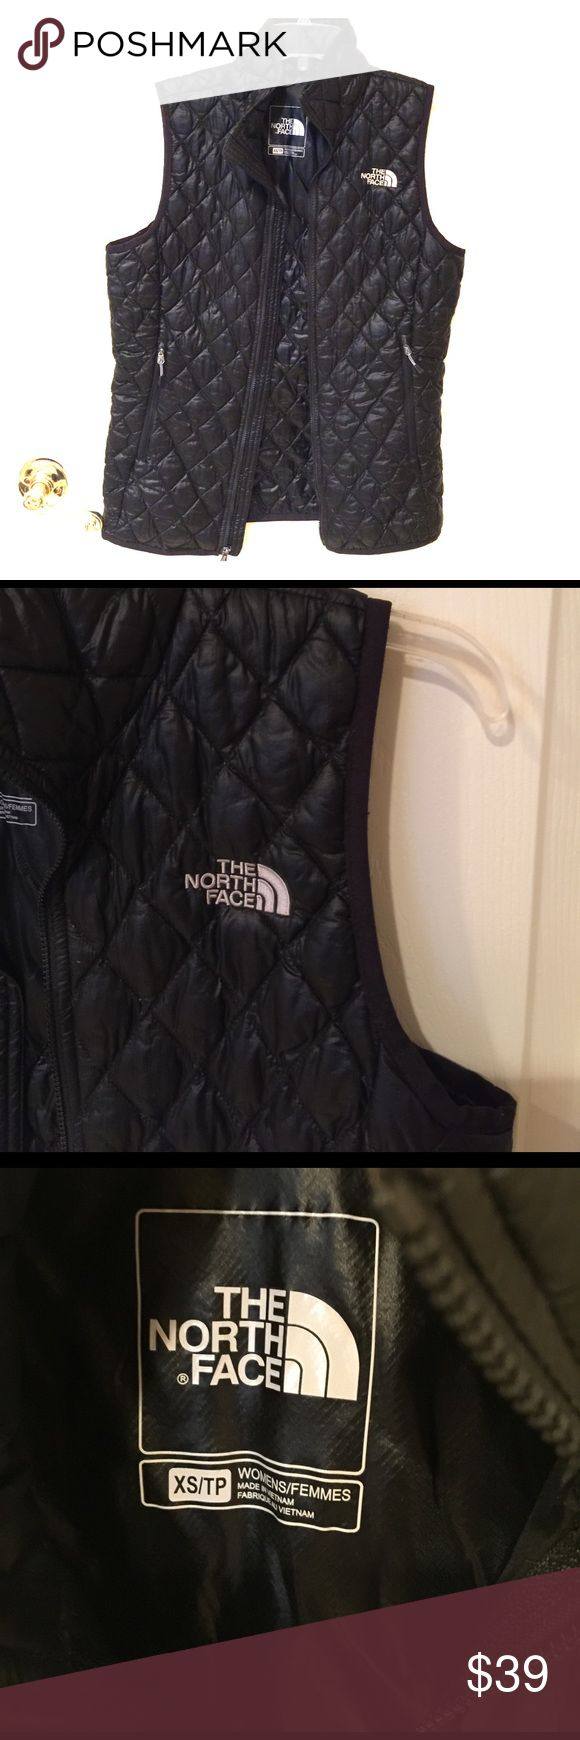 The North Face black vest size XS The North Face black vest, gently used. The North Face Jackets & Coats Vests